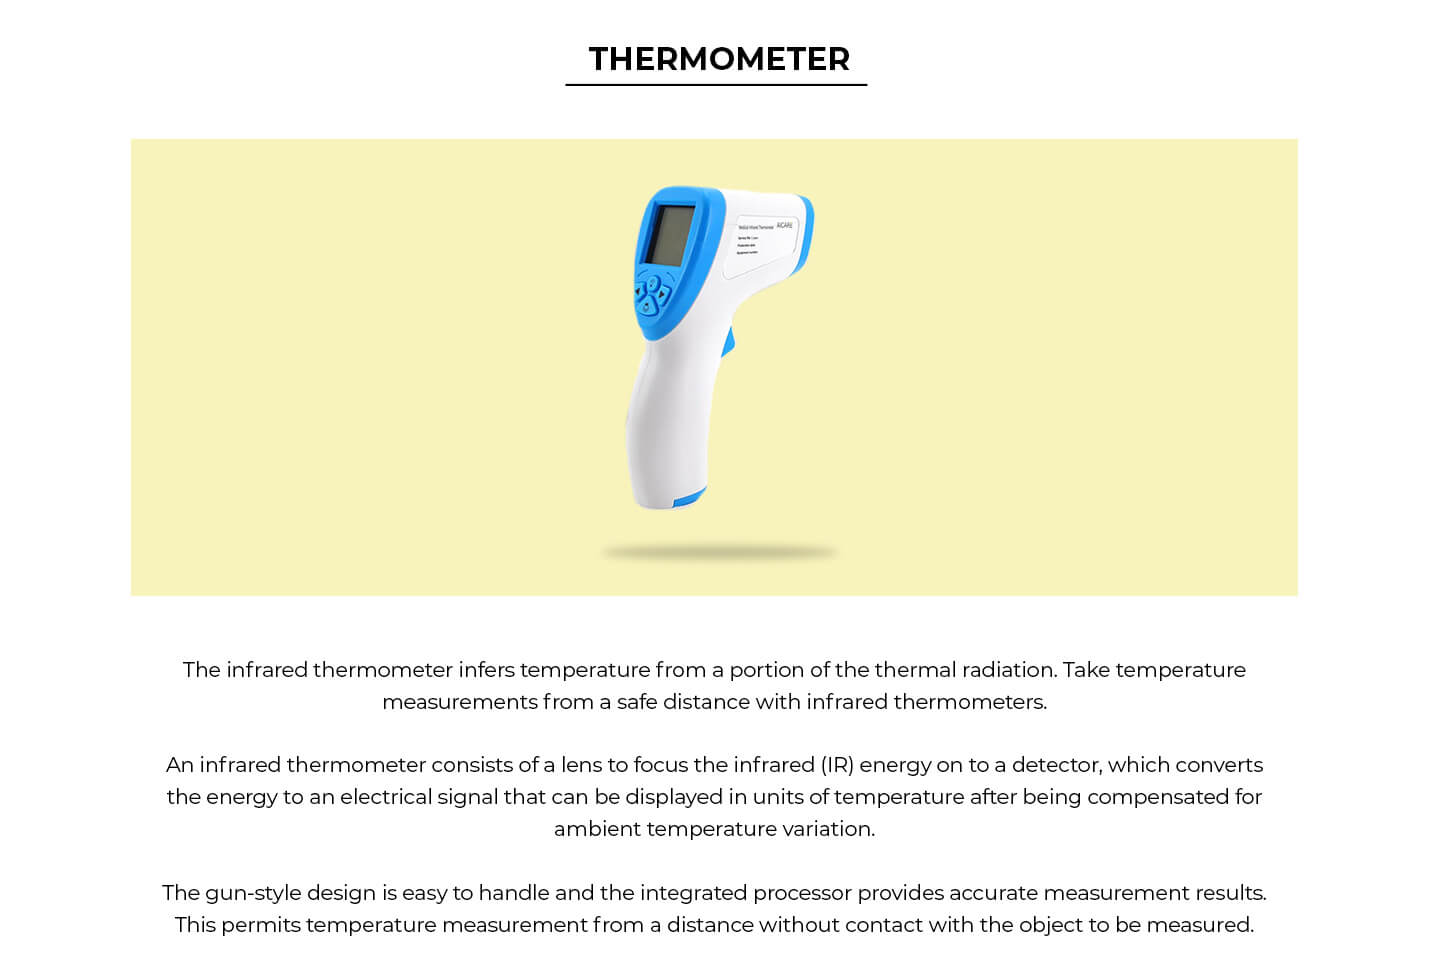 Non-Contact Infrared Thermometer Description Image Website 0@Bewakoof.com